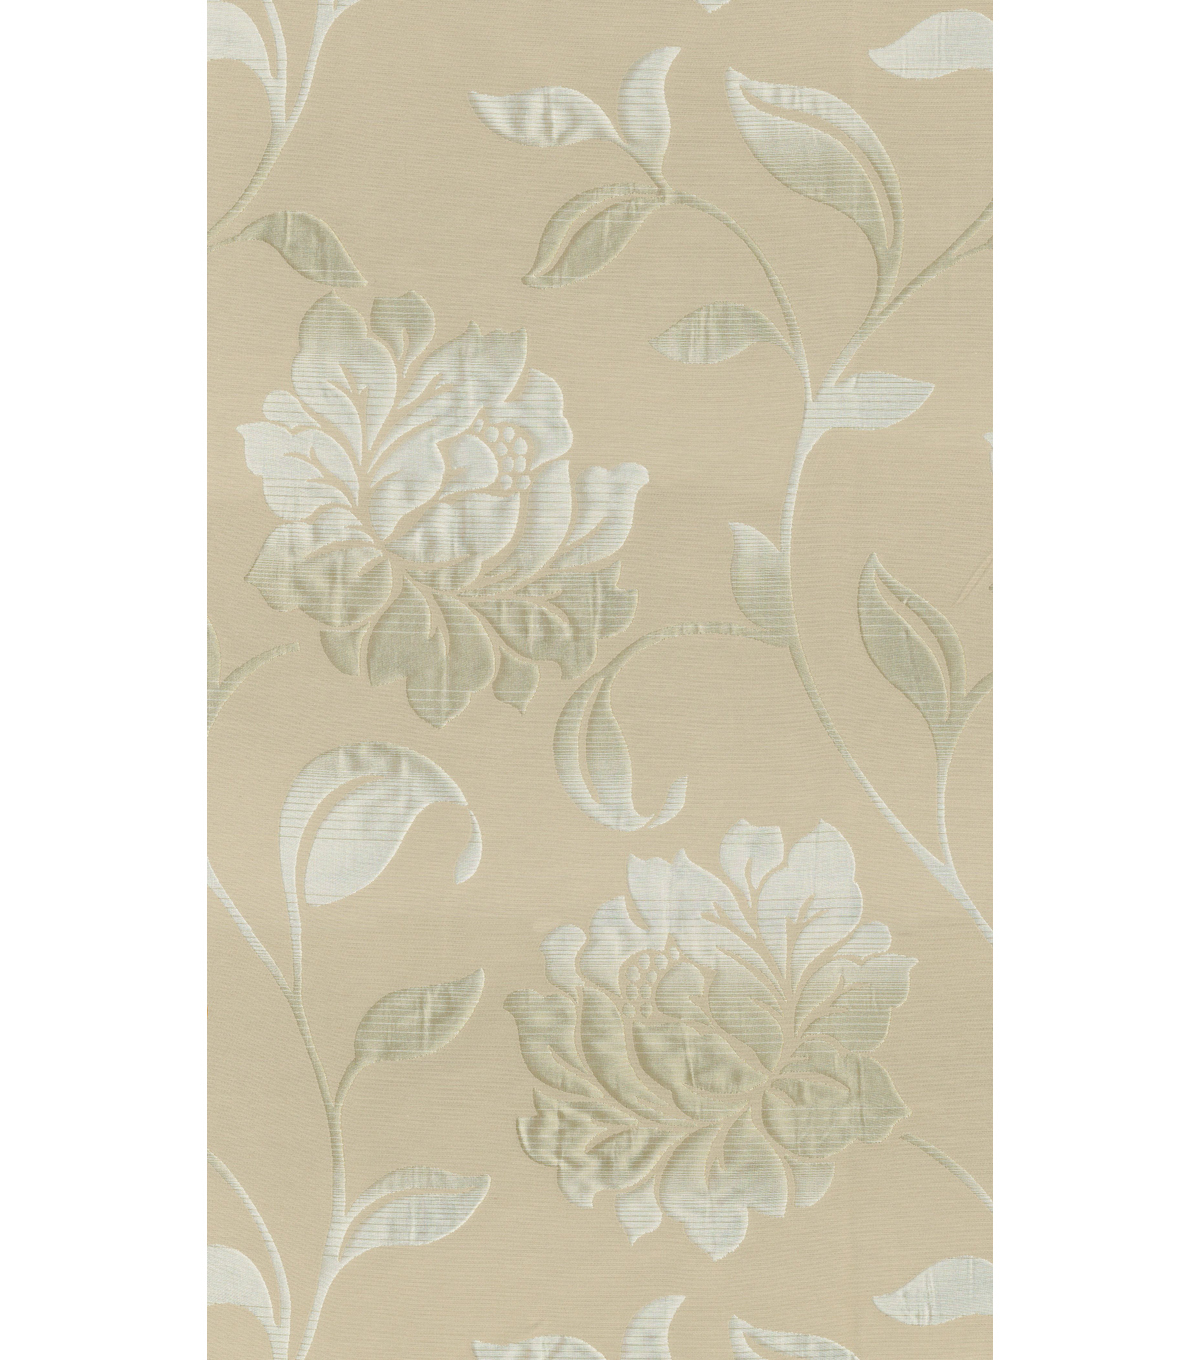 Home Decor 8\u0022x8\u0022 Fabric Swatch-Elite Forli Cream